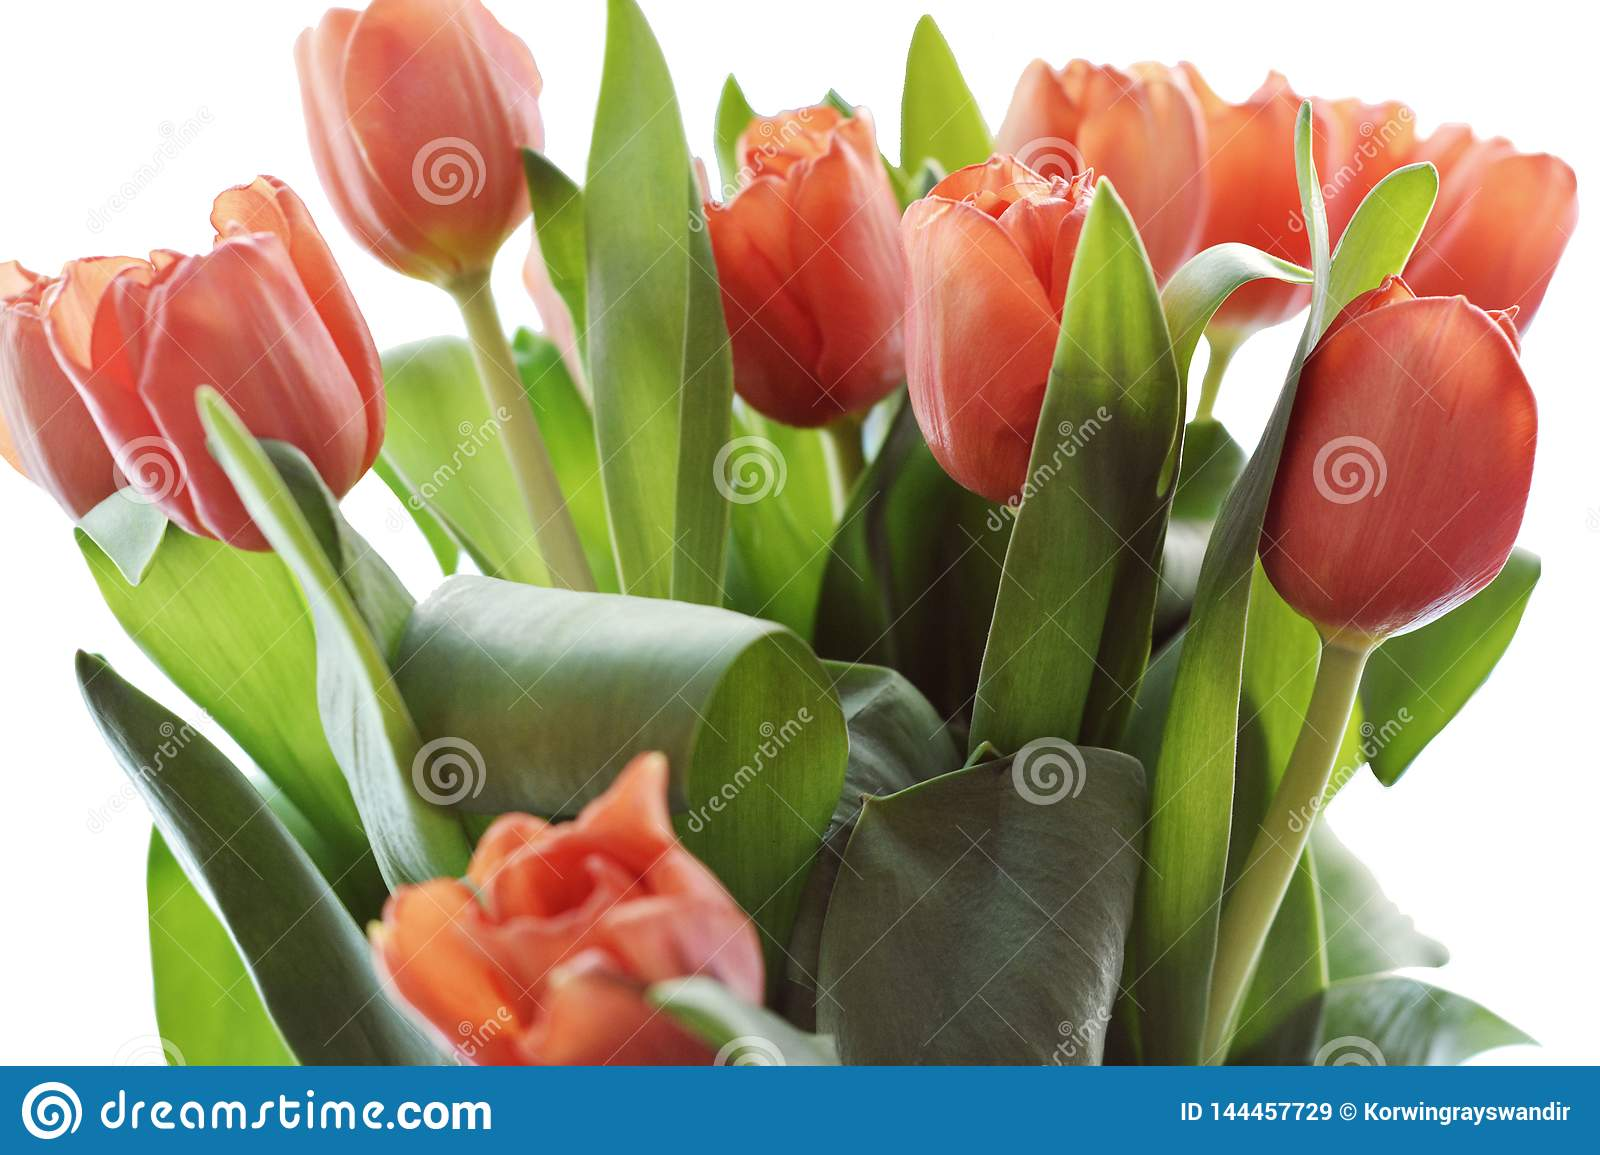 Coral tulip clipart is a high quality raster clipart